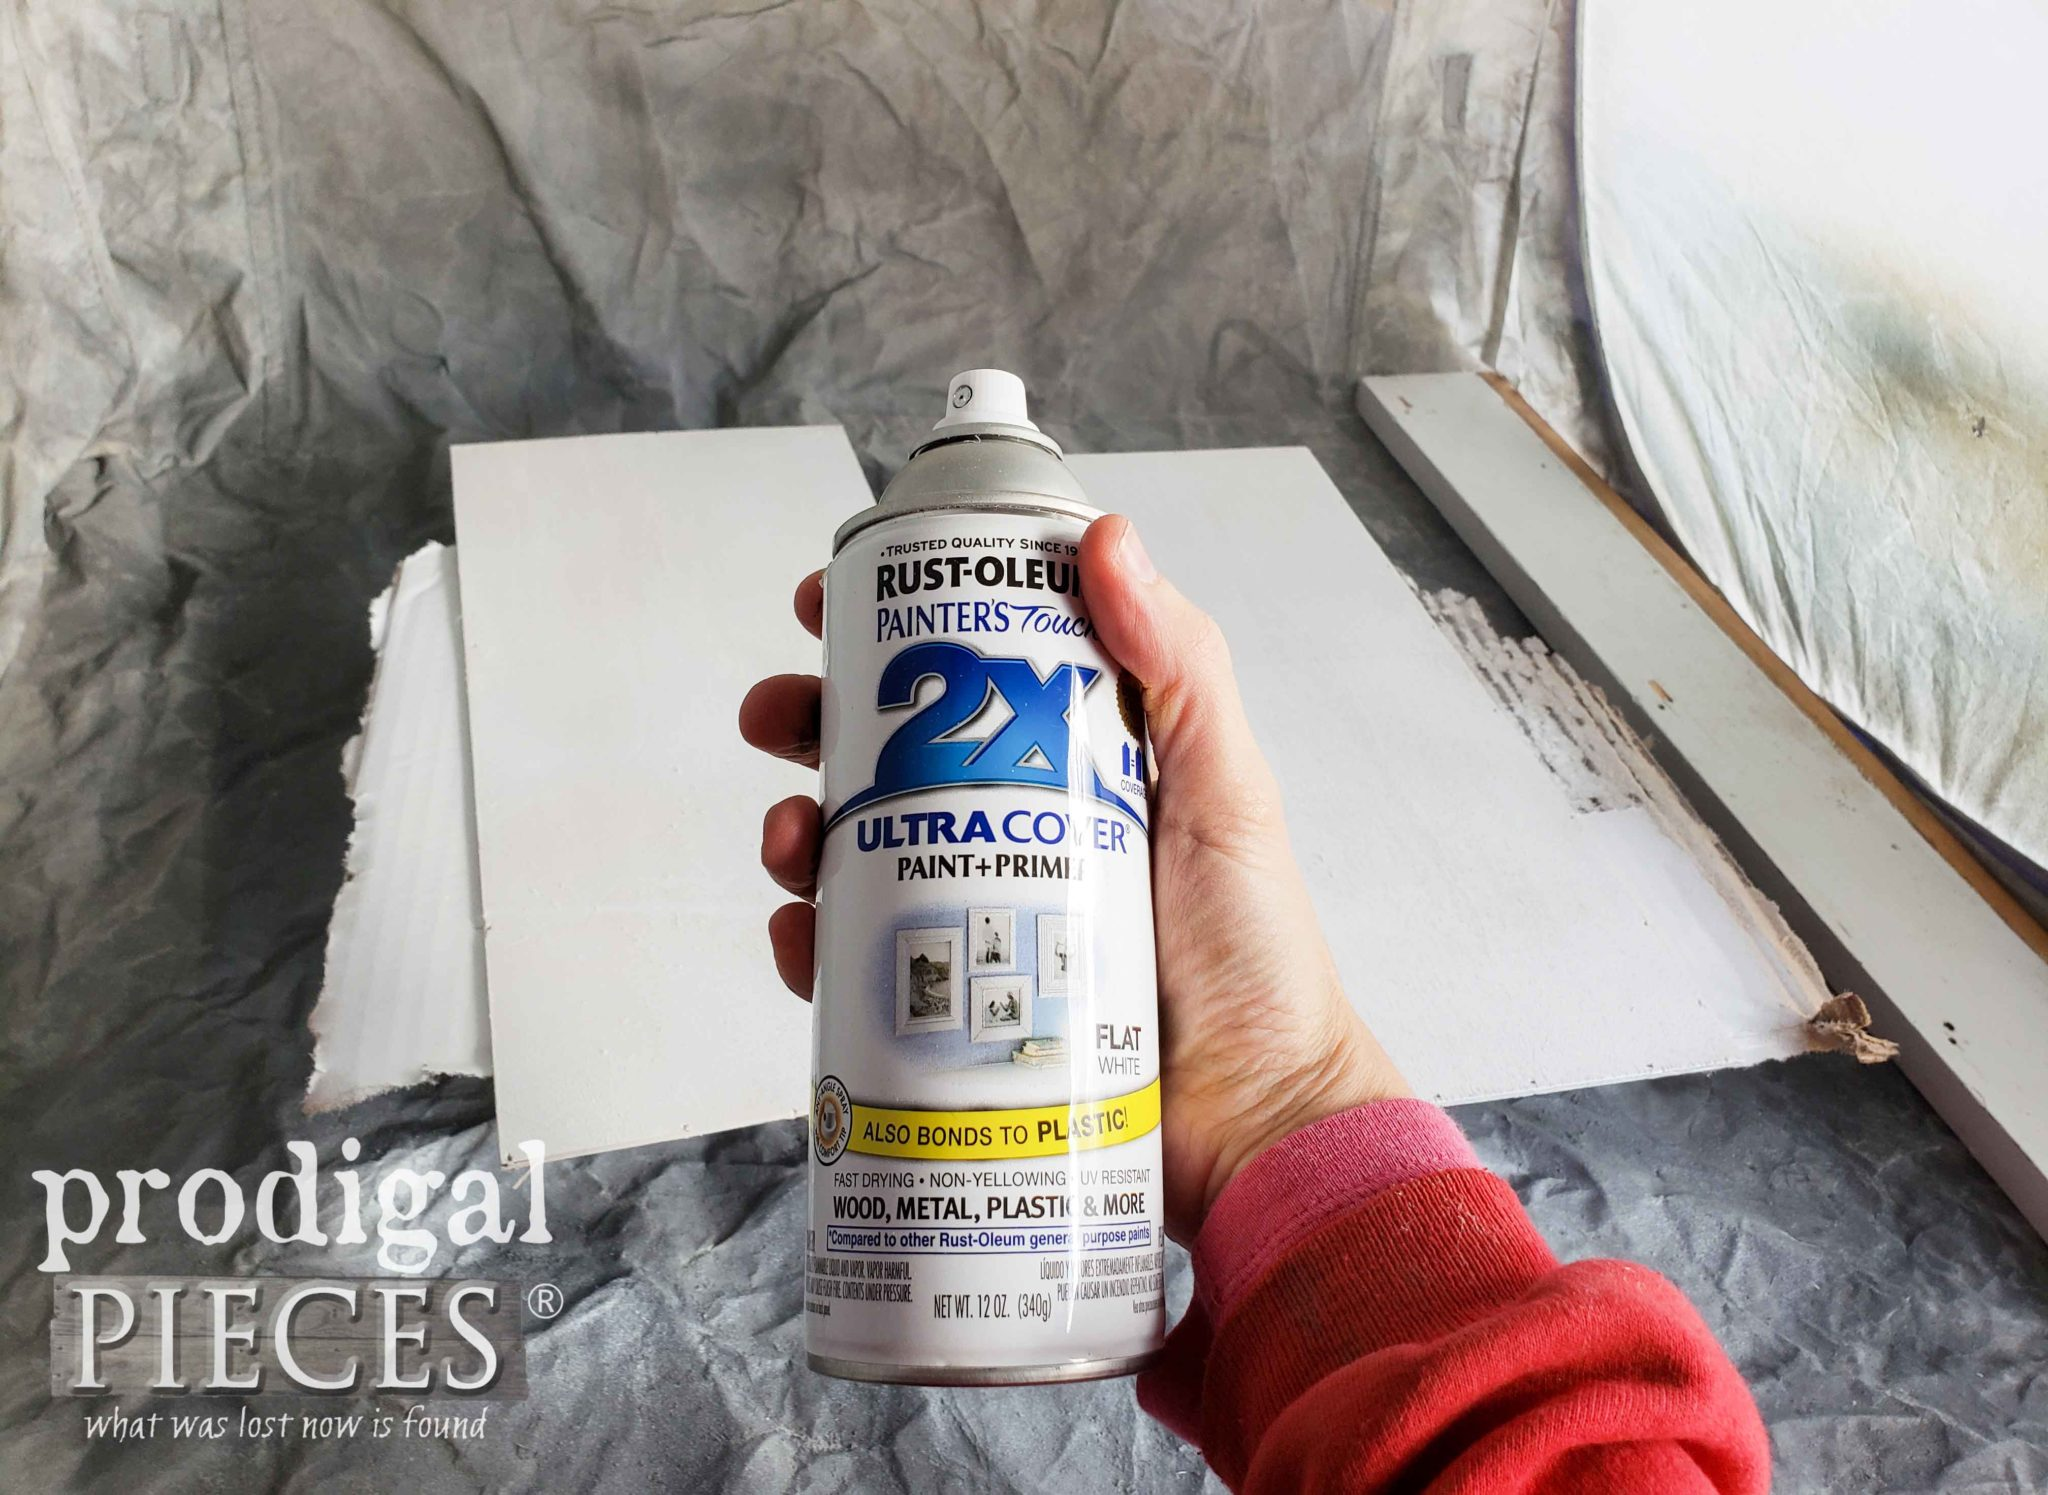 Rustoleum Flat White Spray Paint to Upcycle Old Christmas Decor | prodigalpieces.com